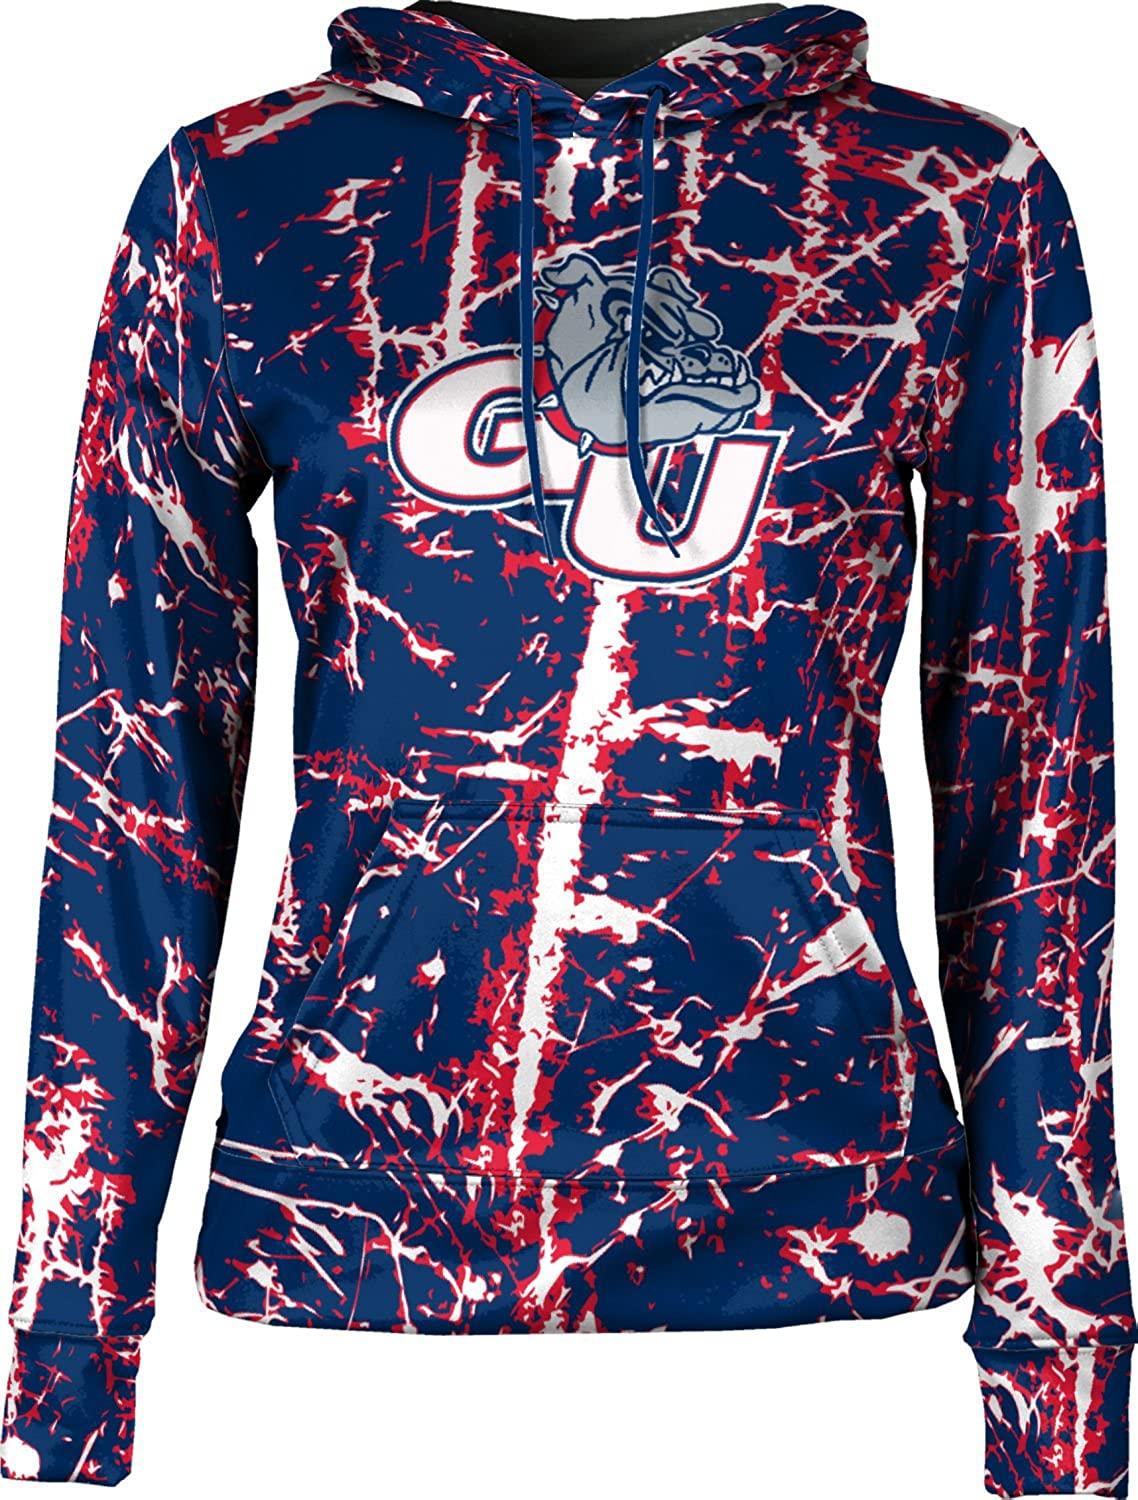 Distressed School Spirit Sweatshirt ProSphere Gonzaga University Girls Pullover Hoodie